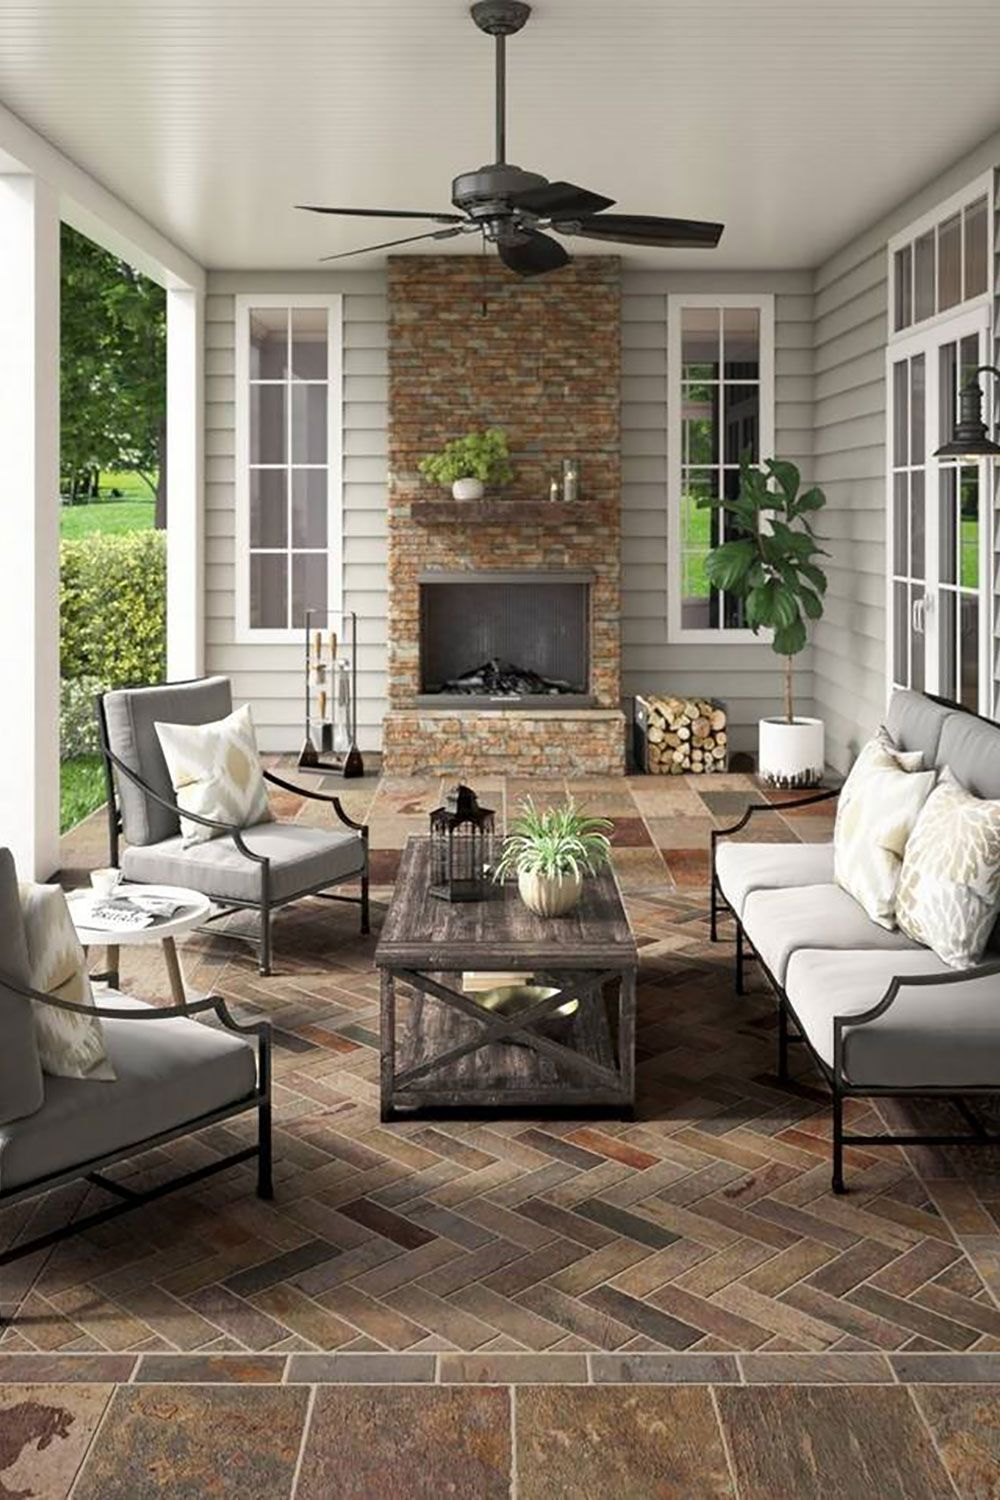 Buying Guide Shop For Stone Outdoor Living Space Home Outdoor Patio Decor